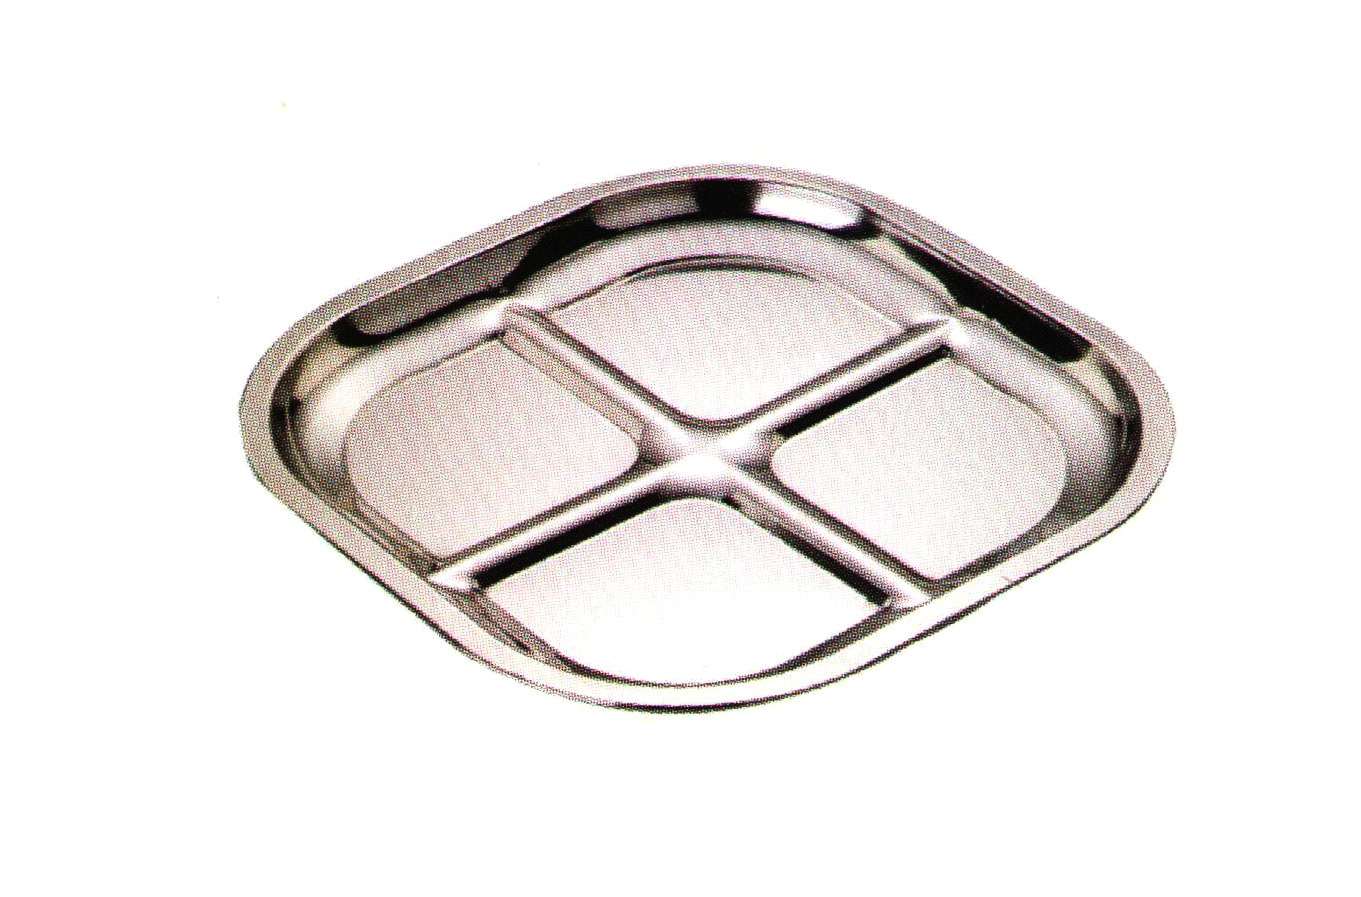 Stainless Steel Kitchenware Square Tray/ Plate Sp043